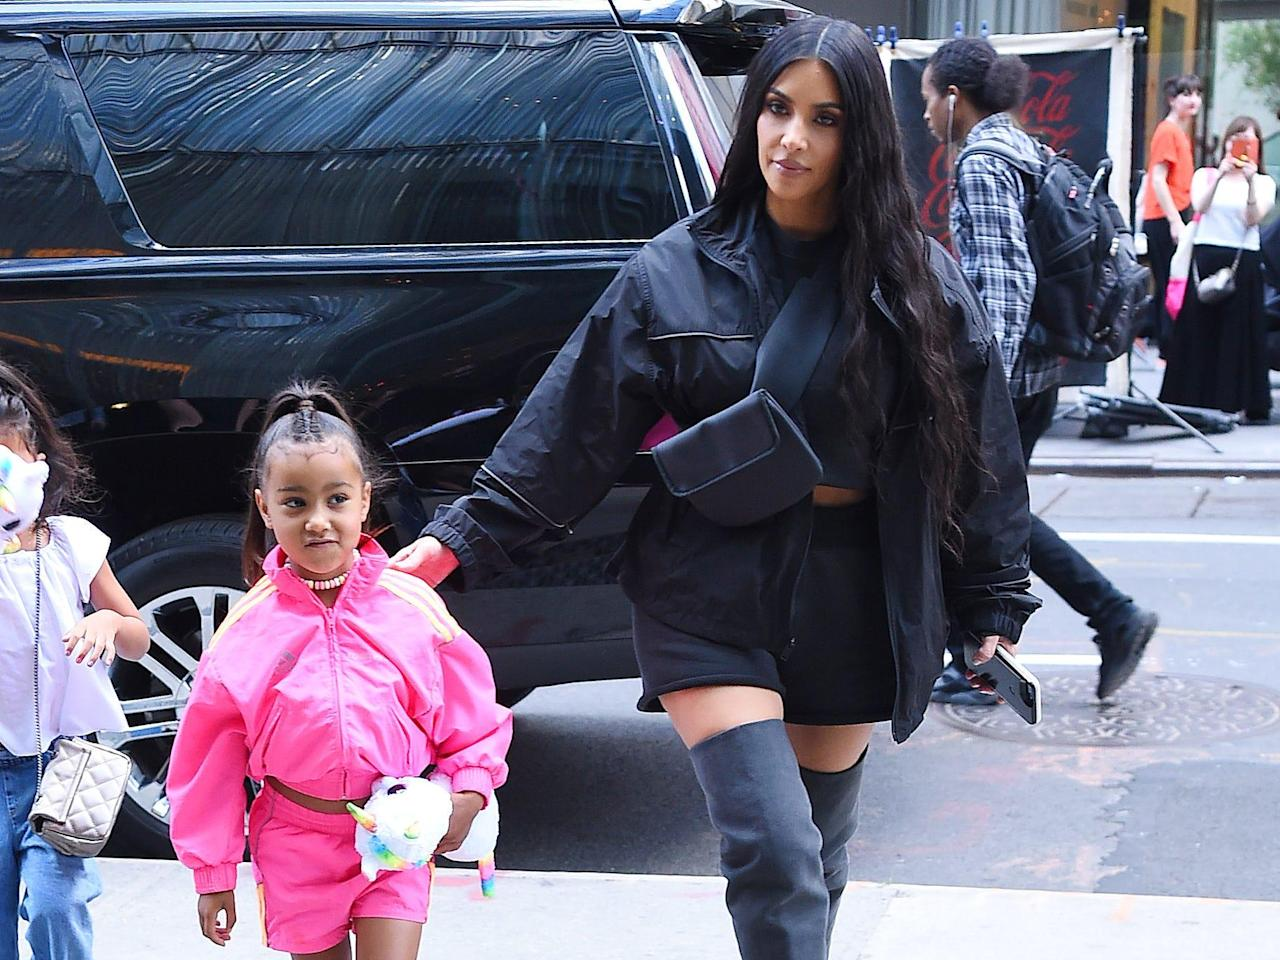 Kim Kardashian showed off North's all-pink bedroom, and experts say the minimalist design could promote focus and reduce anxiety